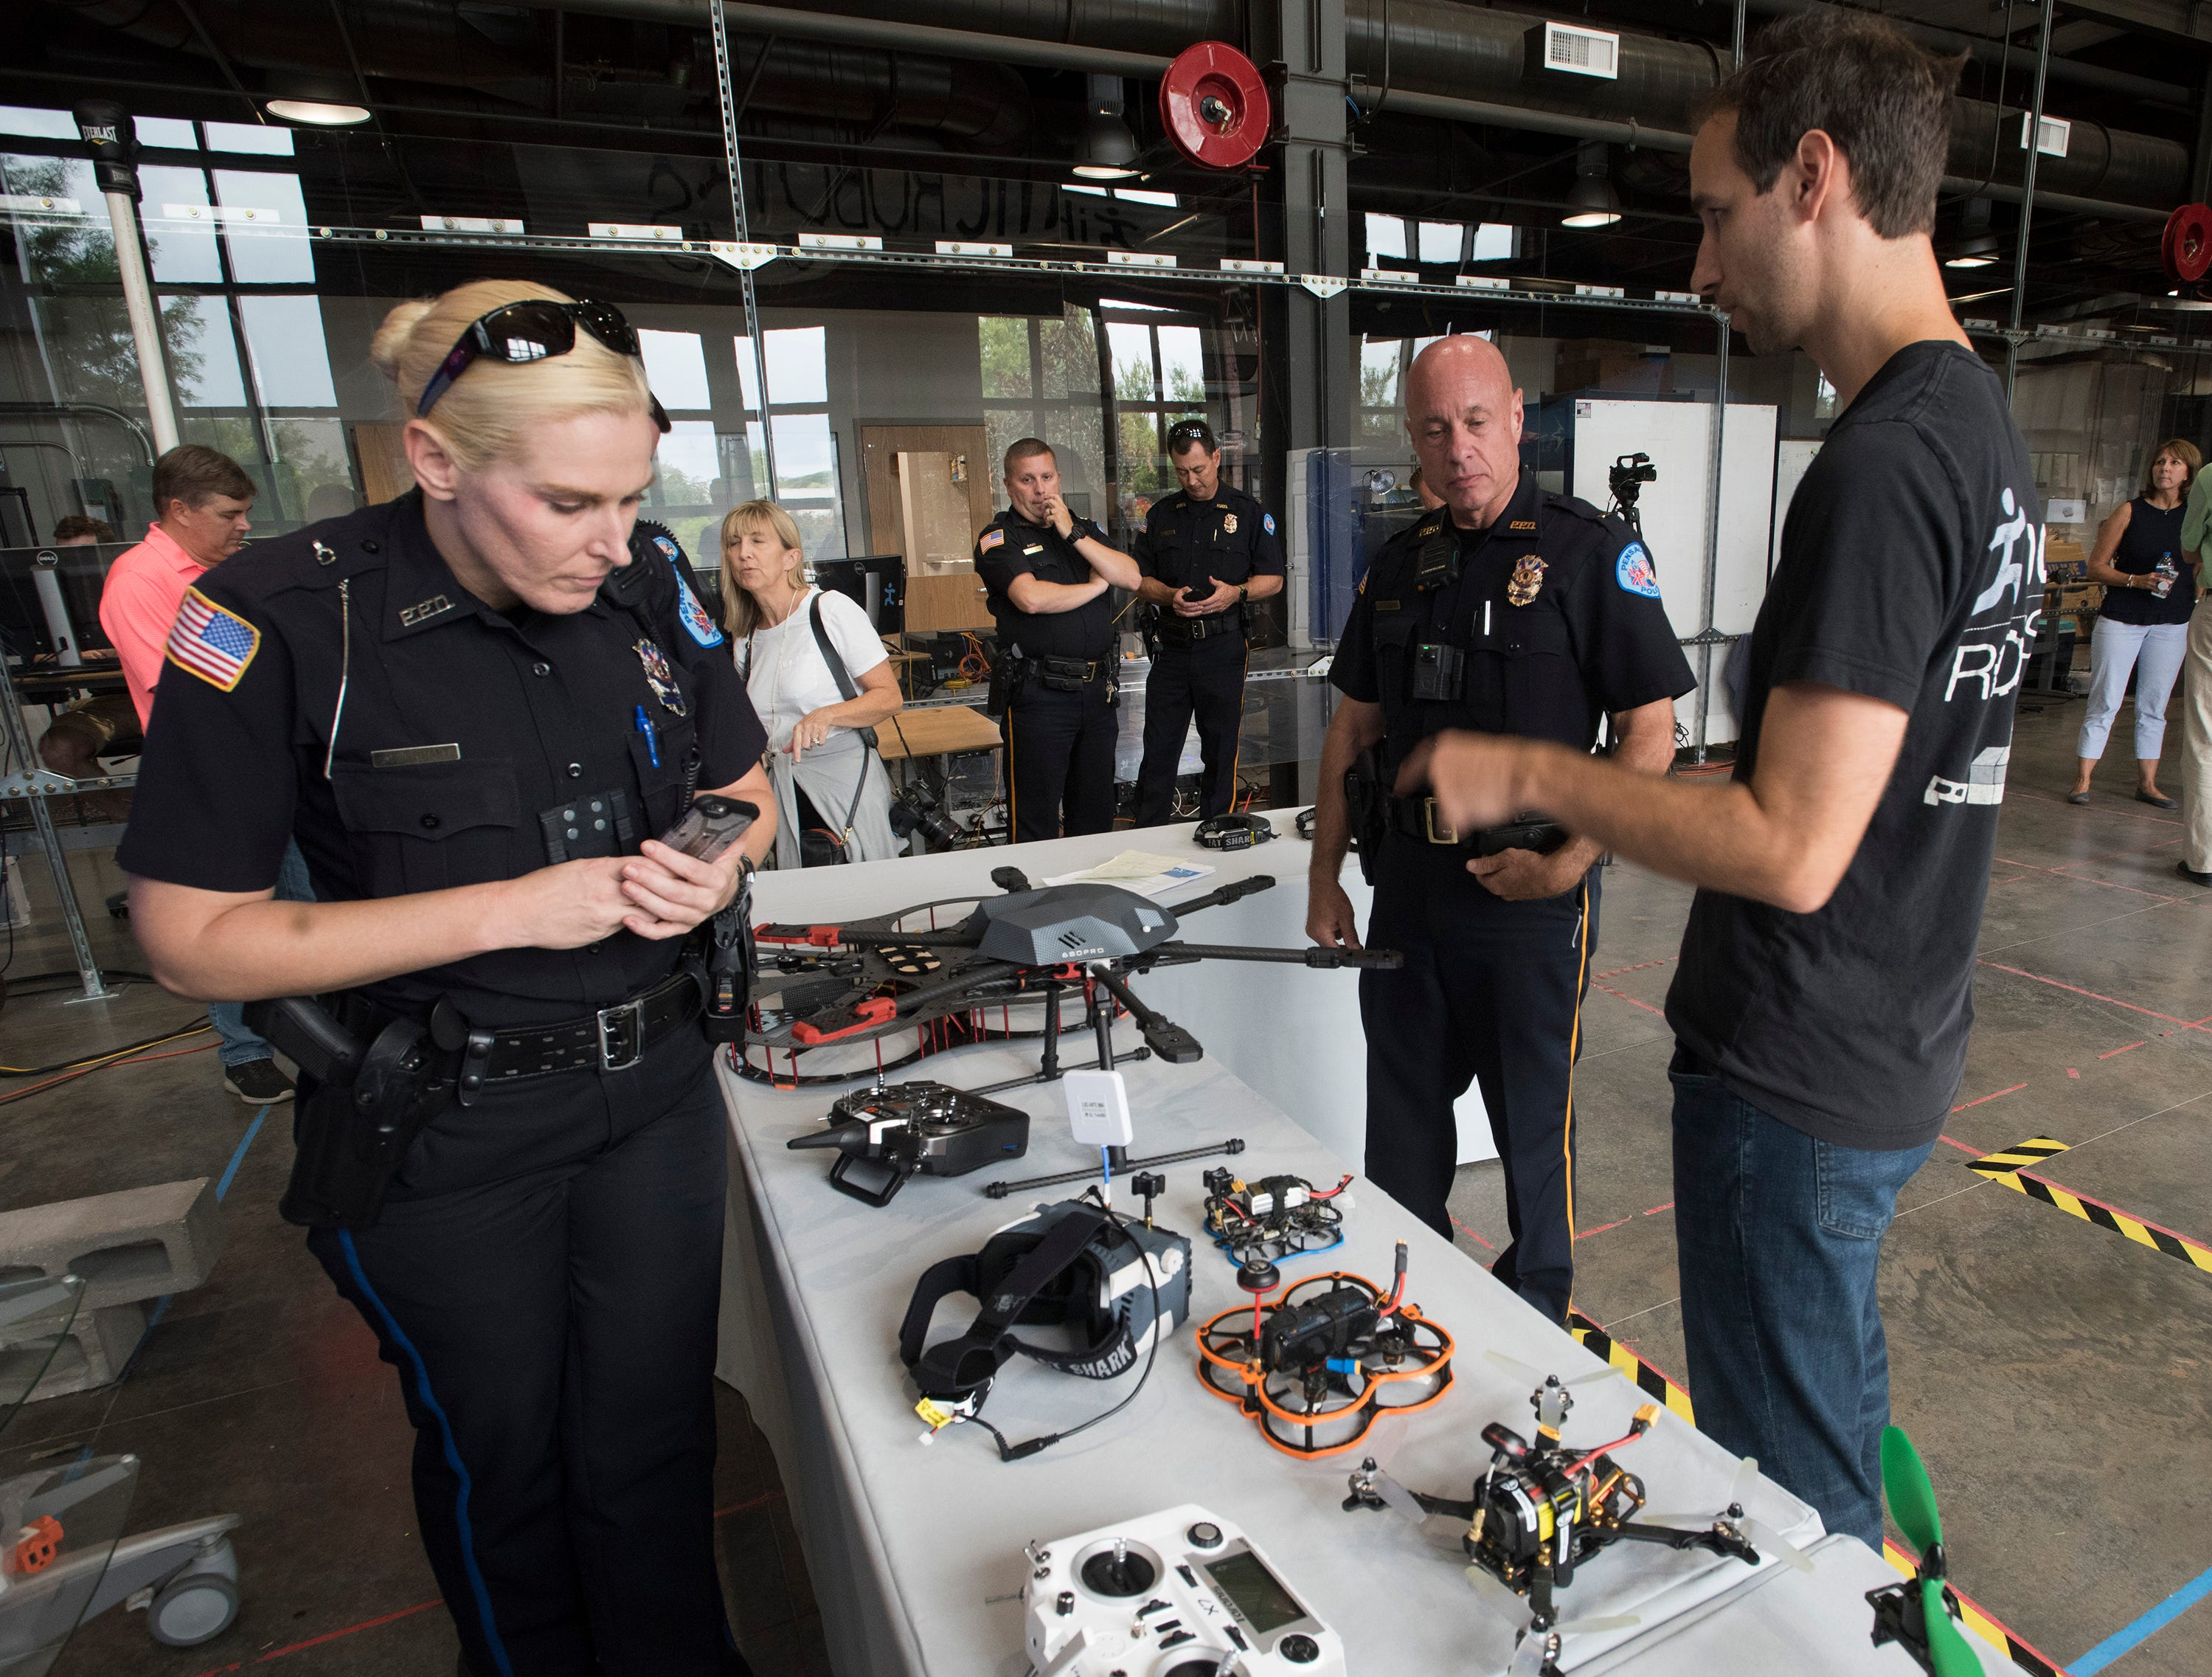 Institute of Human and Machine Cognition, Research Assoc. John Carff describes the drone technology available on the open market to Pensacola Police Officers, Kelly Eierhart, and Steve Bauer during a tour of the IHMC facilities on Thursday, Aug. 16, 2018. The PPD and IHMC are working together on a plan to implement the new technology into its law enforcement capabilities.